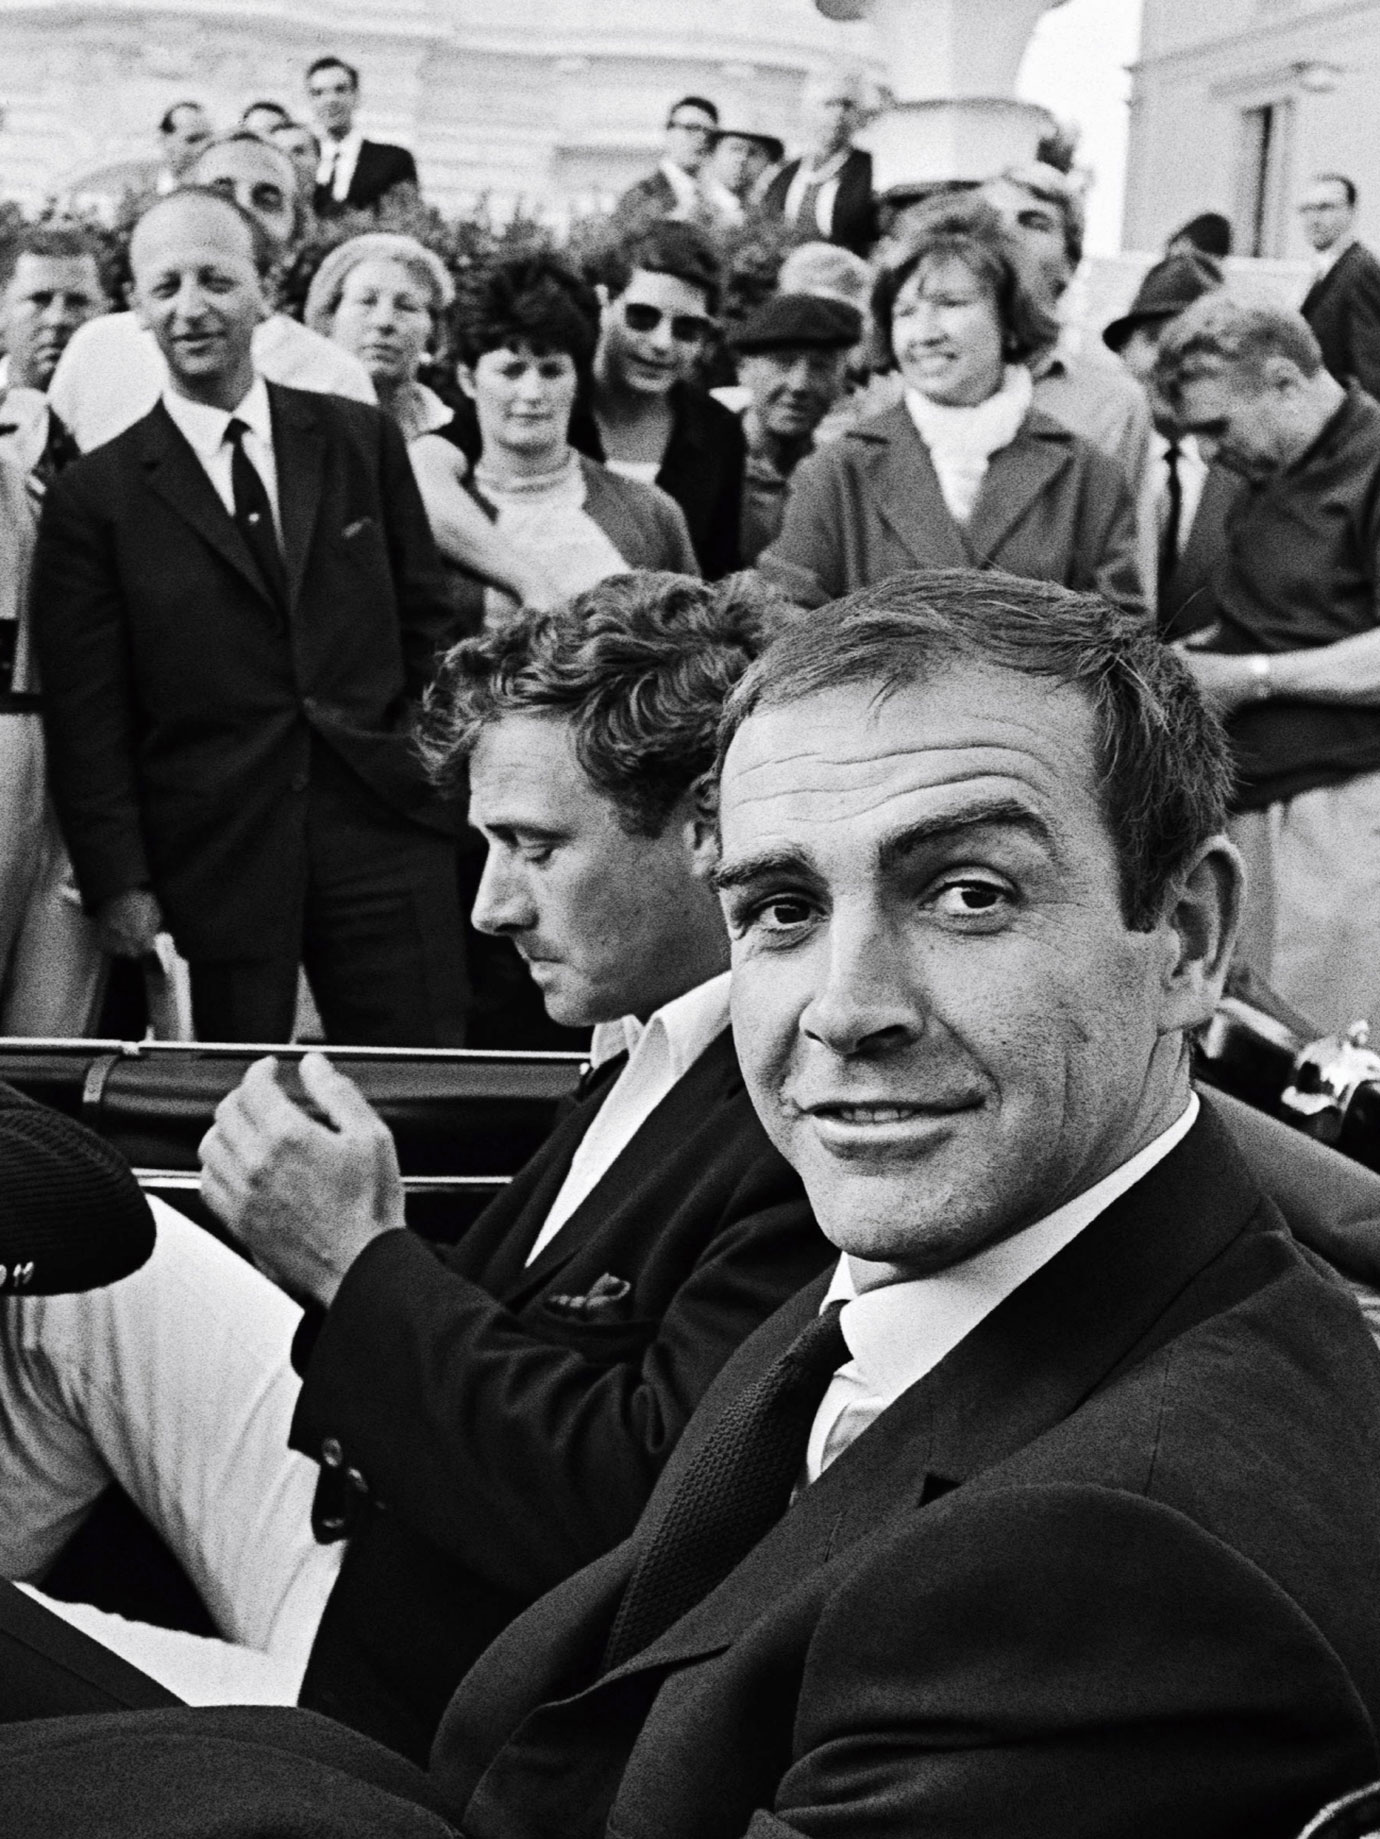 A man smiling at the camera in the back of an open top car as people look on in the 1960s.